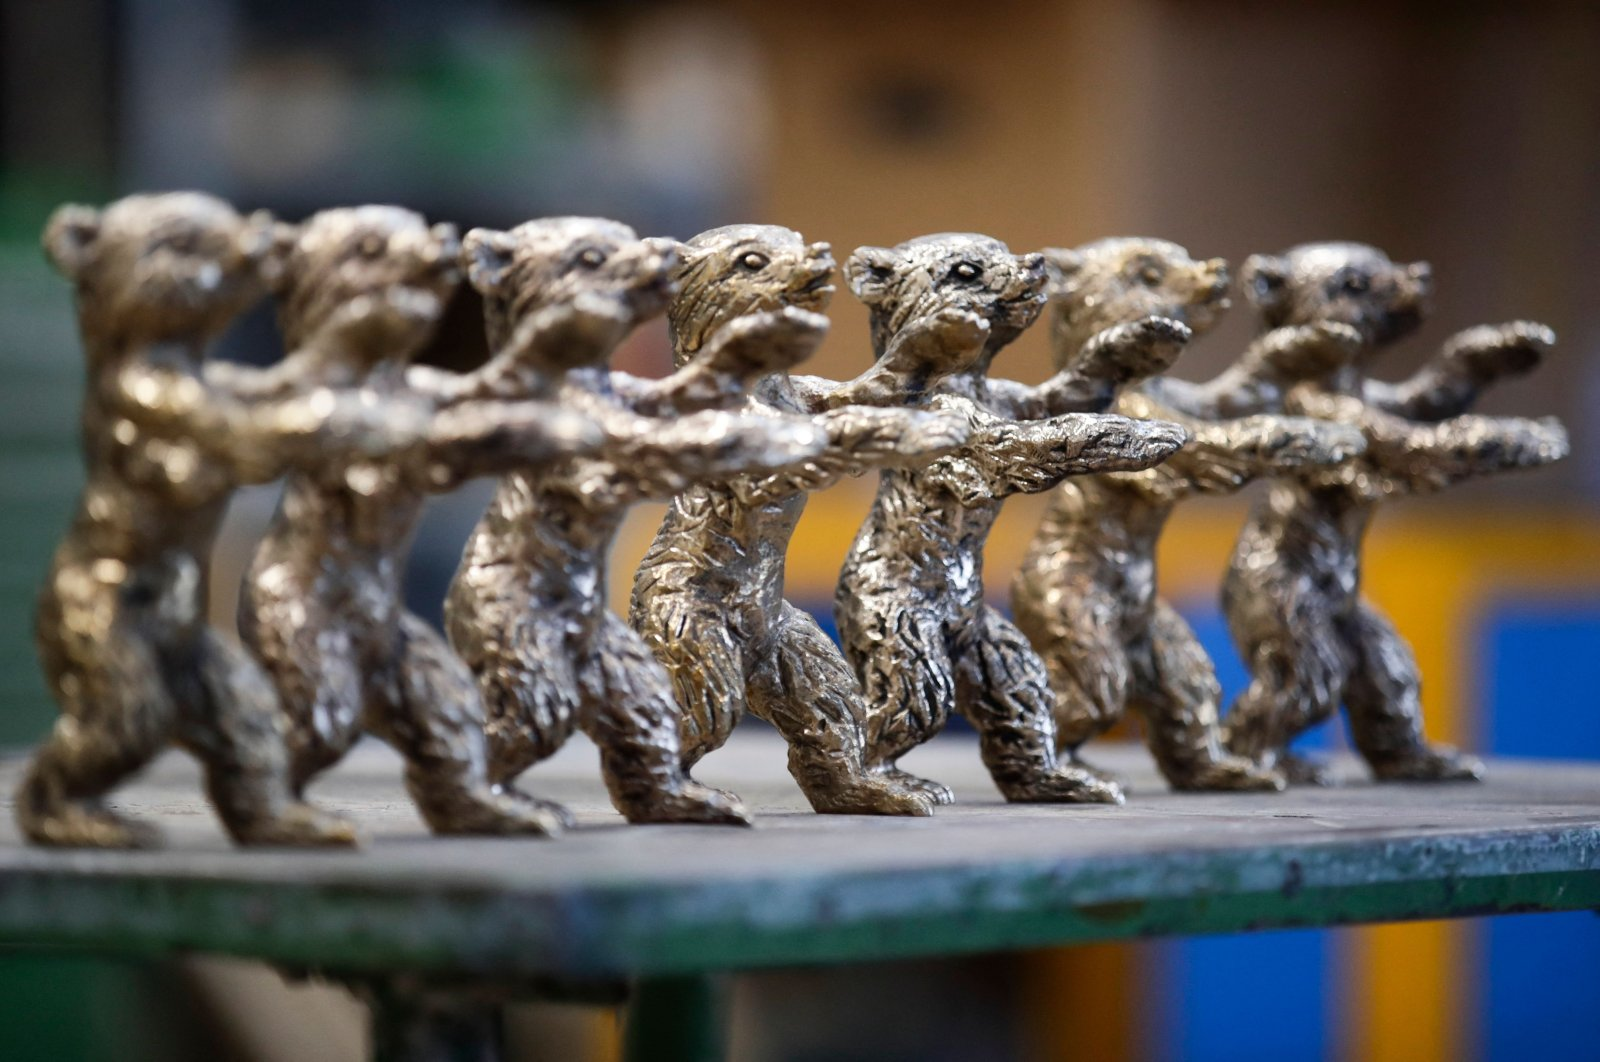 Bear trophies for the upcoming 71st Berlinale film festival are displayed during a media tour at the Noack foundry in Berlin, Germany, Feb. 17, 2021. (AFP Photo)